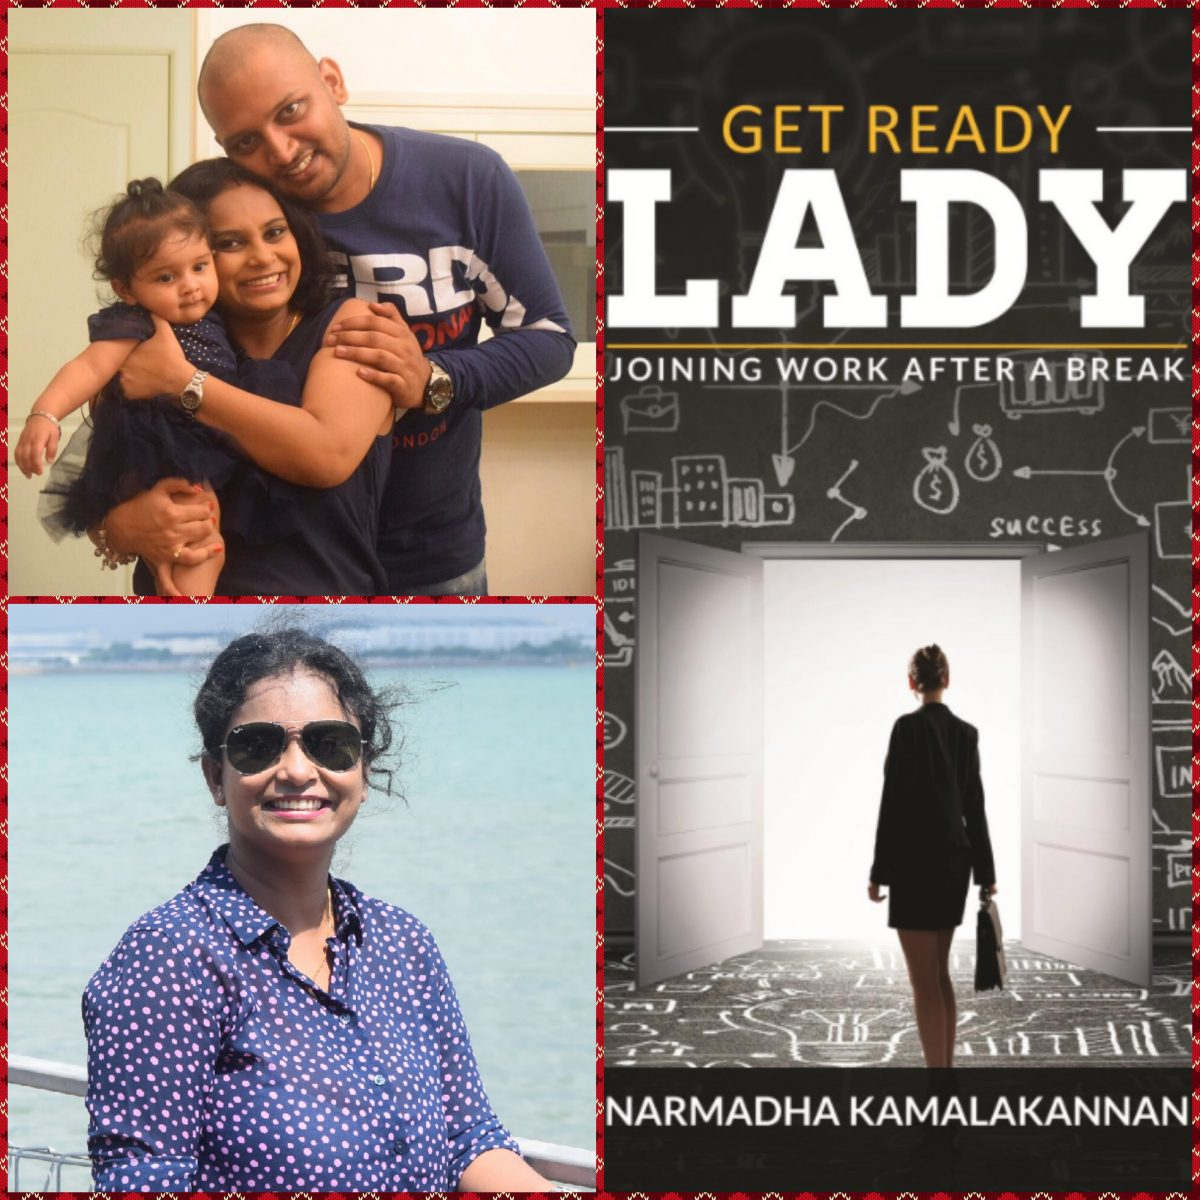 GET READY LADY Interview Series : Ankit talks about his WINNER wife Sneha, Manager , Application Services